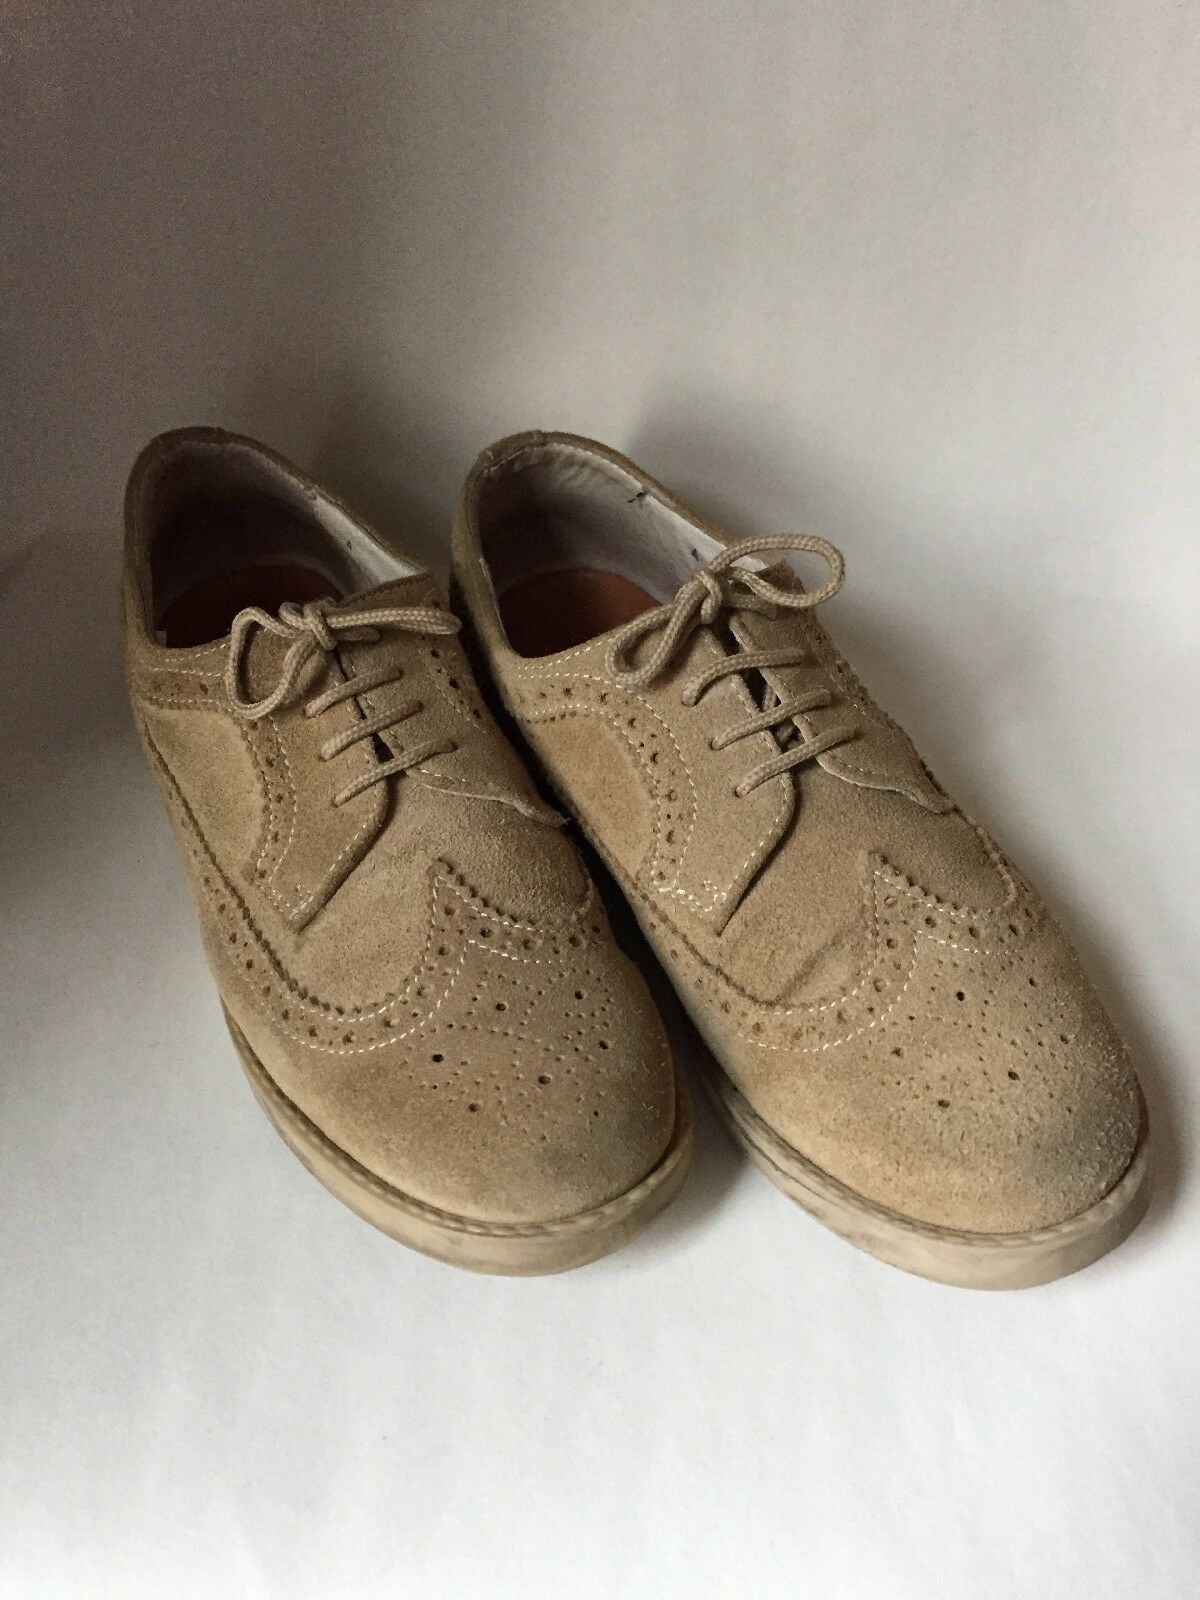 Brooks Brougehers femmes Tan Suede Made in  Wingtips Oxfords Brogues Taille 4